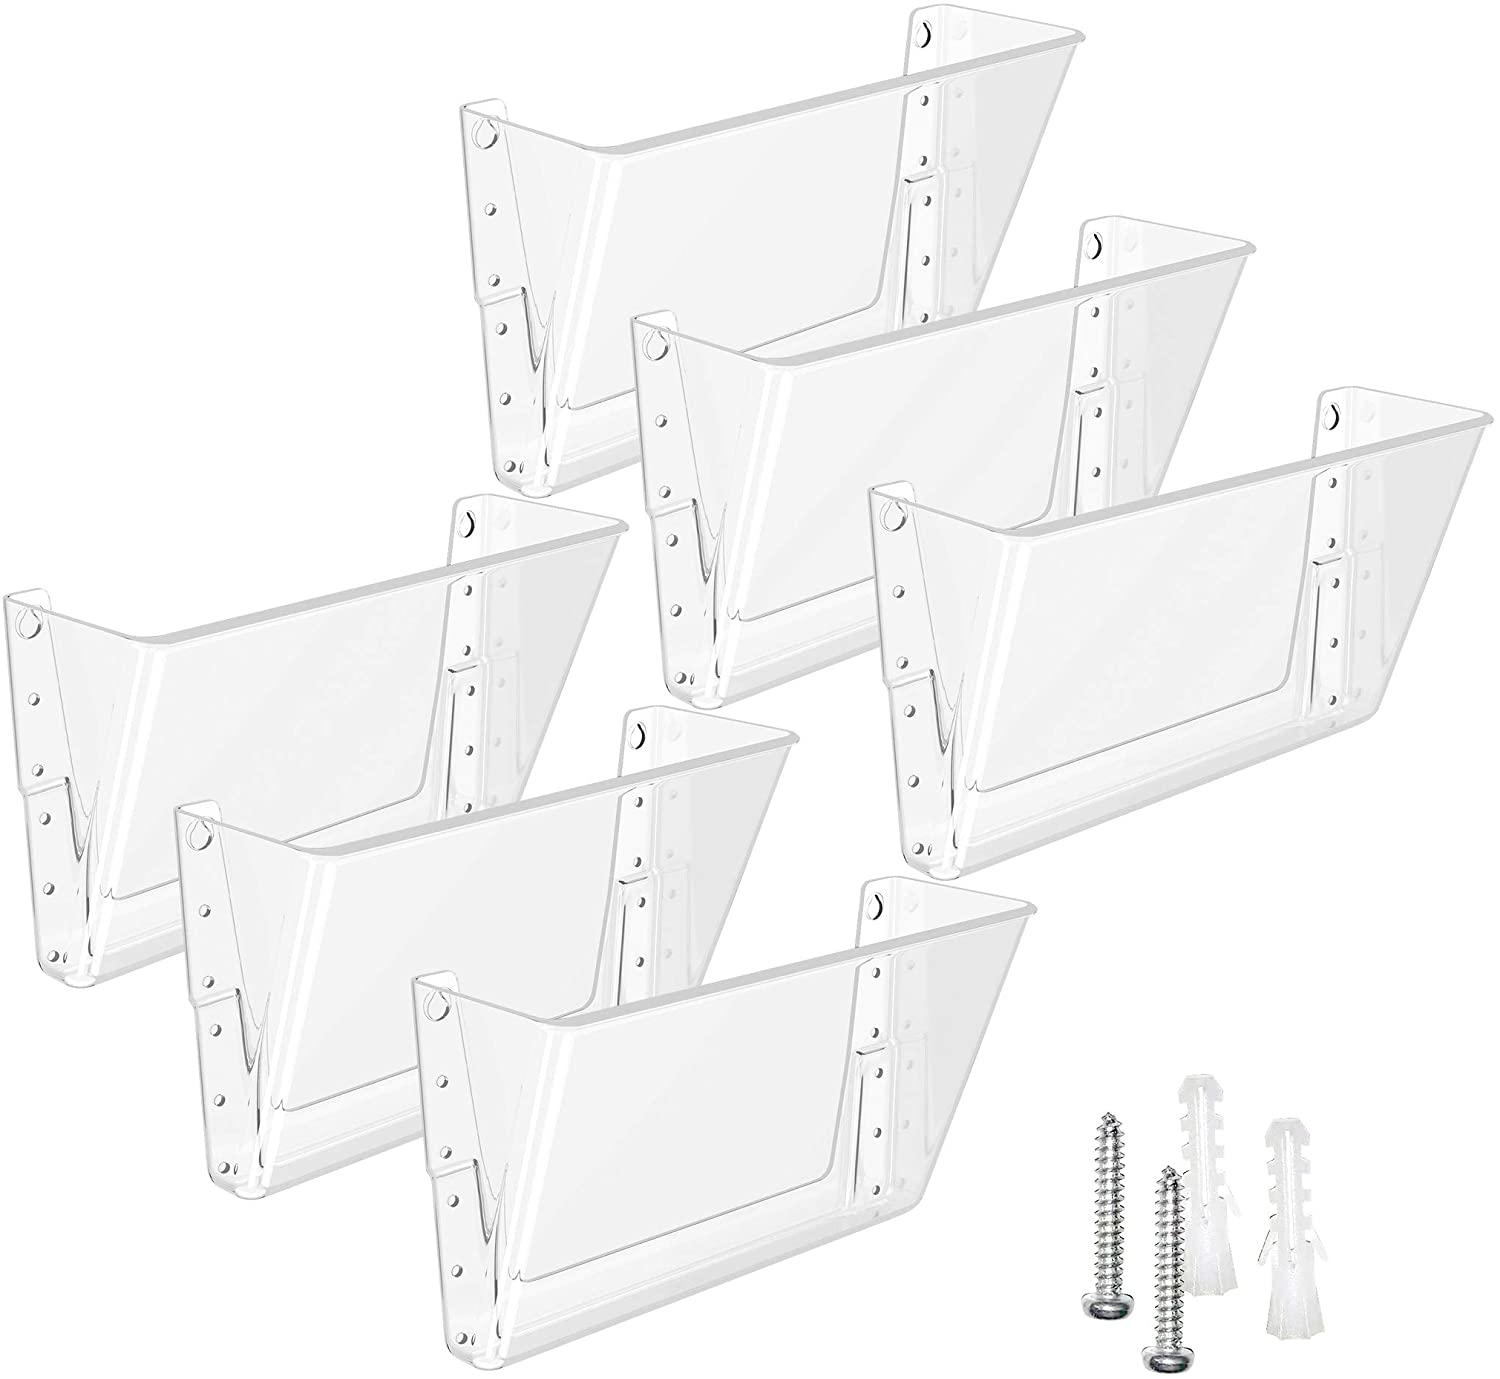 MaxGear Acrylic File Holder Wall Organizer 6 Pockets Hanging File Organizers Wall Mounted Paper Organizer Holders Wall Bins for Office and Home, Clear, 13x4x7 inches